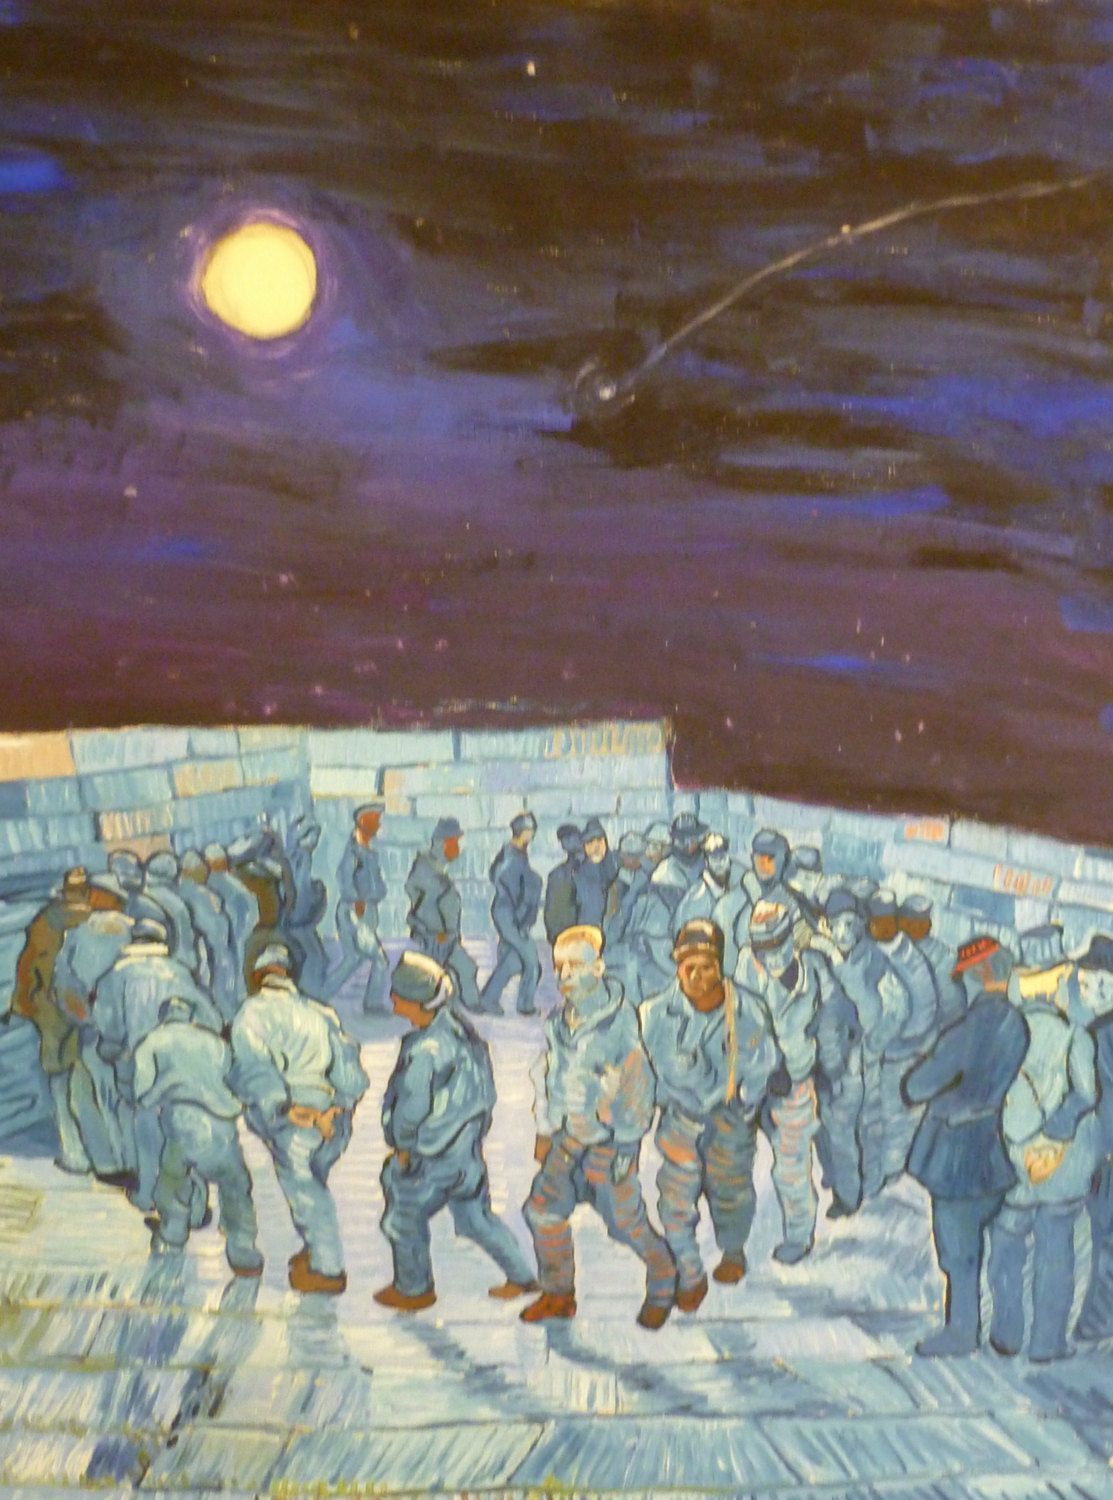 ORIGINAL Oil Painting: Into the prison with free moon. von Sieweart auf Etsy